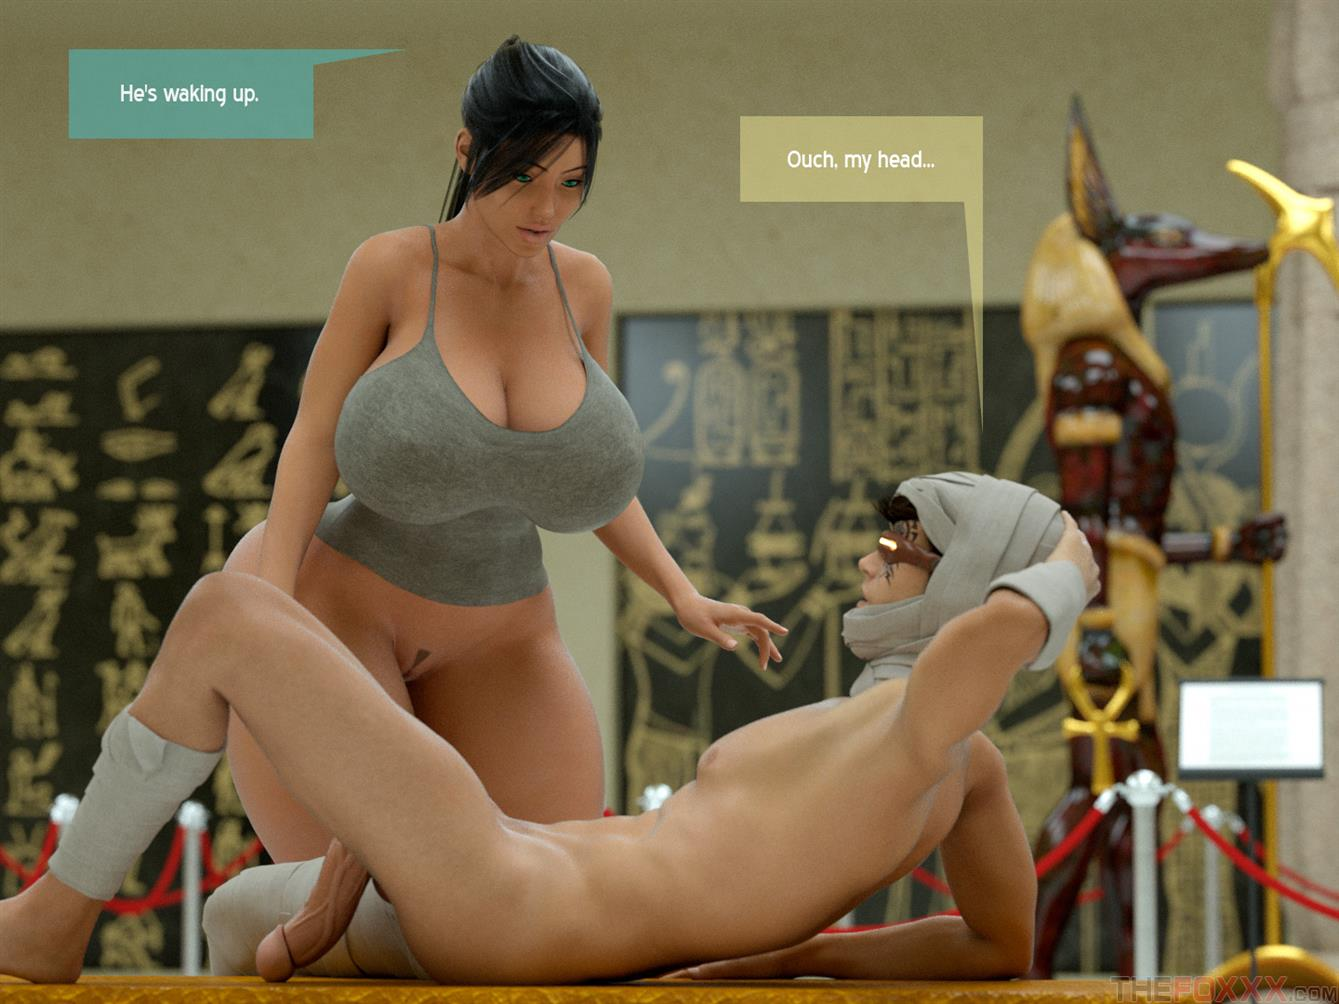 A Horny Mummy In The Museum & Gabhmet [The Foxxx]